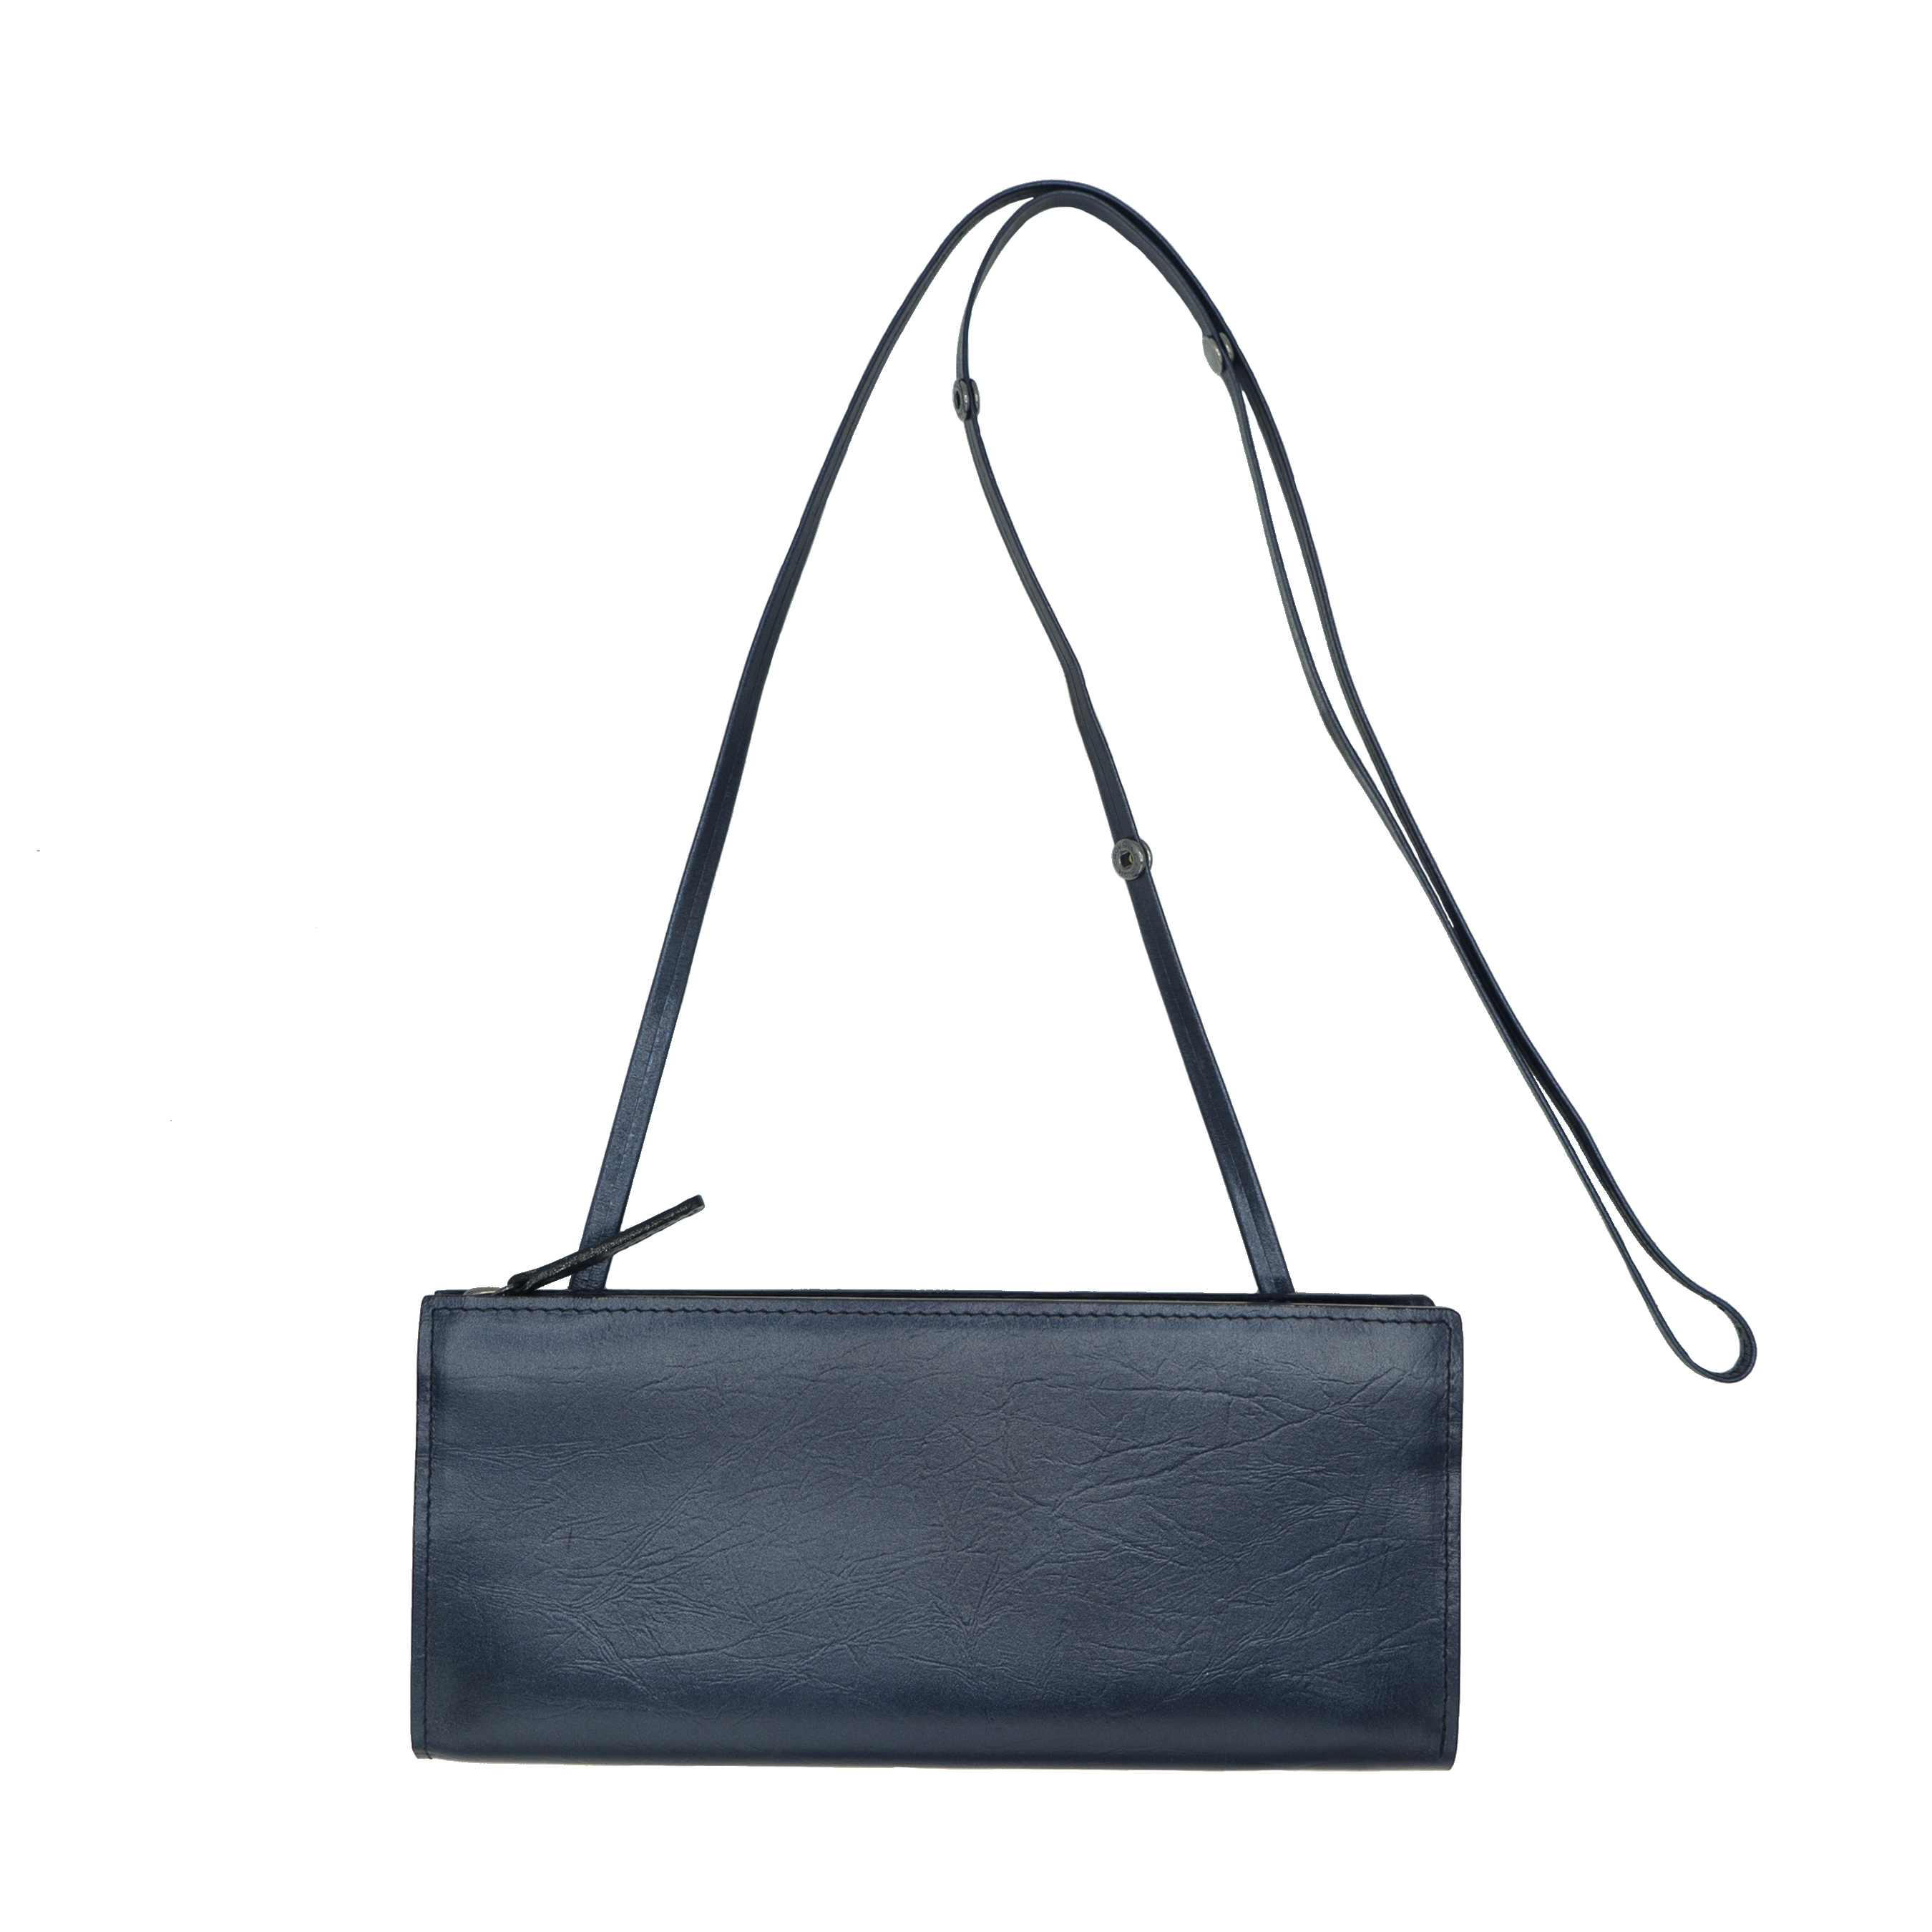 TIN BREATH Ready to go purse Midnight black